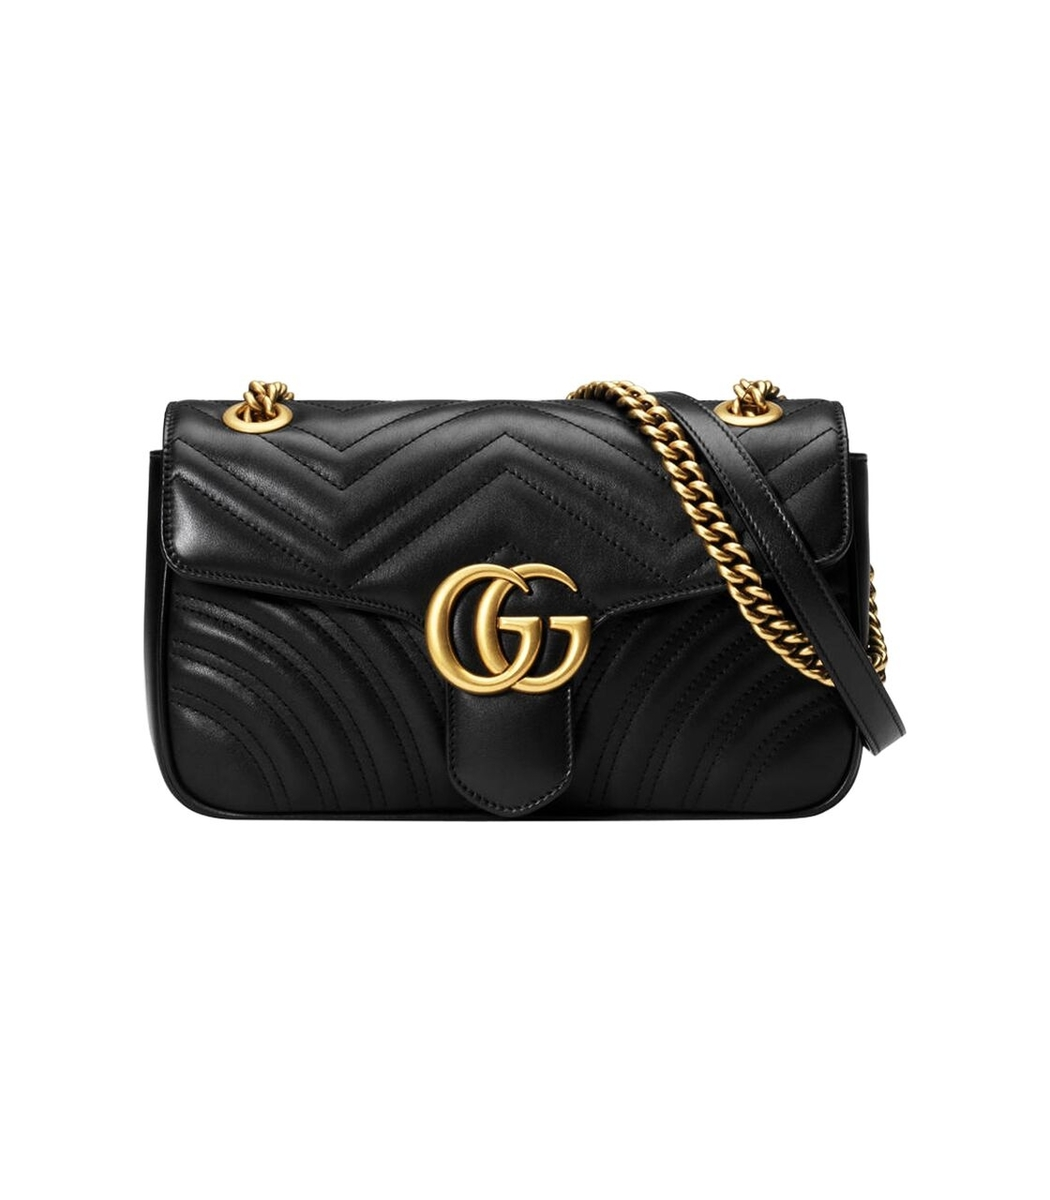 bd55a02b83d88 Gucci Marmont Matelasse Small Bag Review. GUCCI Calfskin Matelasse Small GG  Marmont Shoulder ...